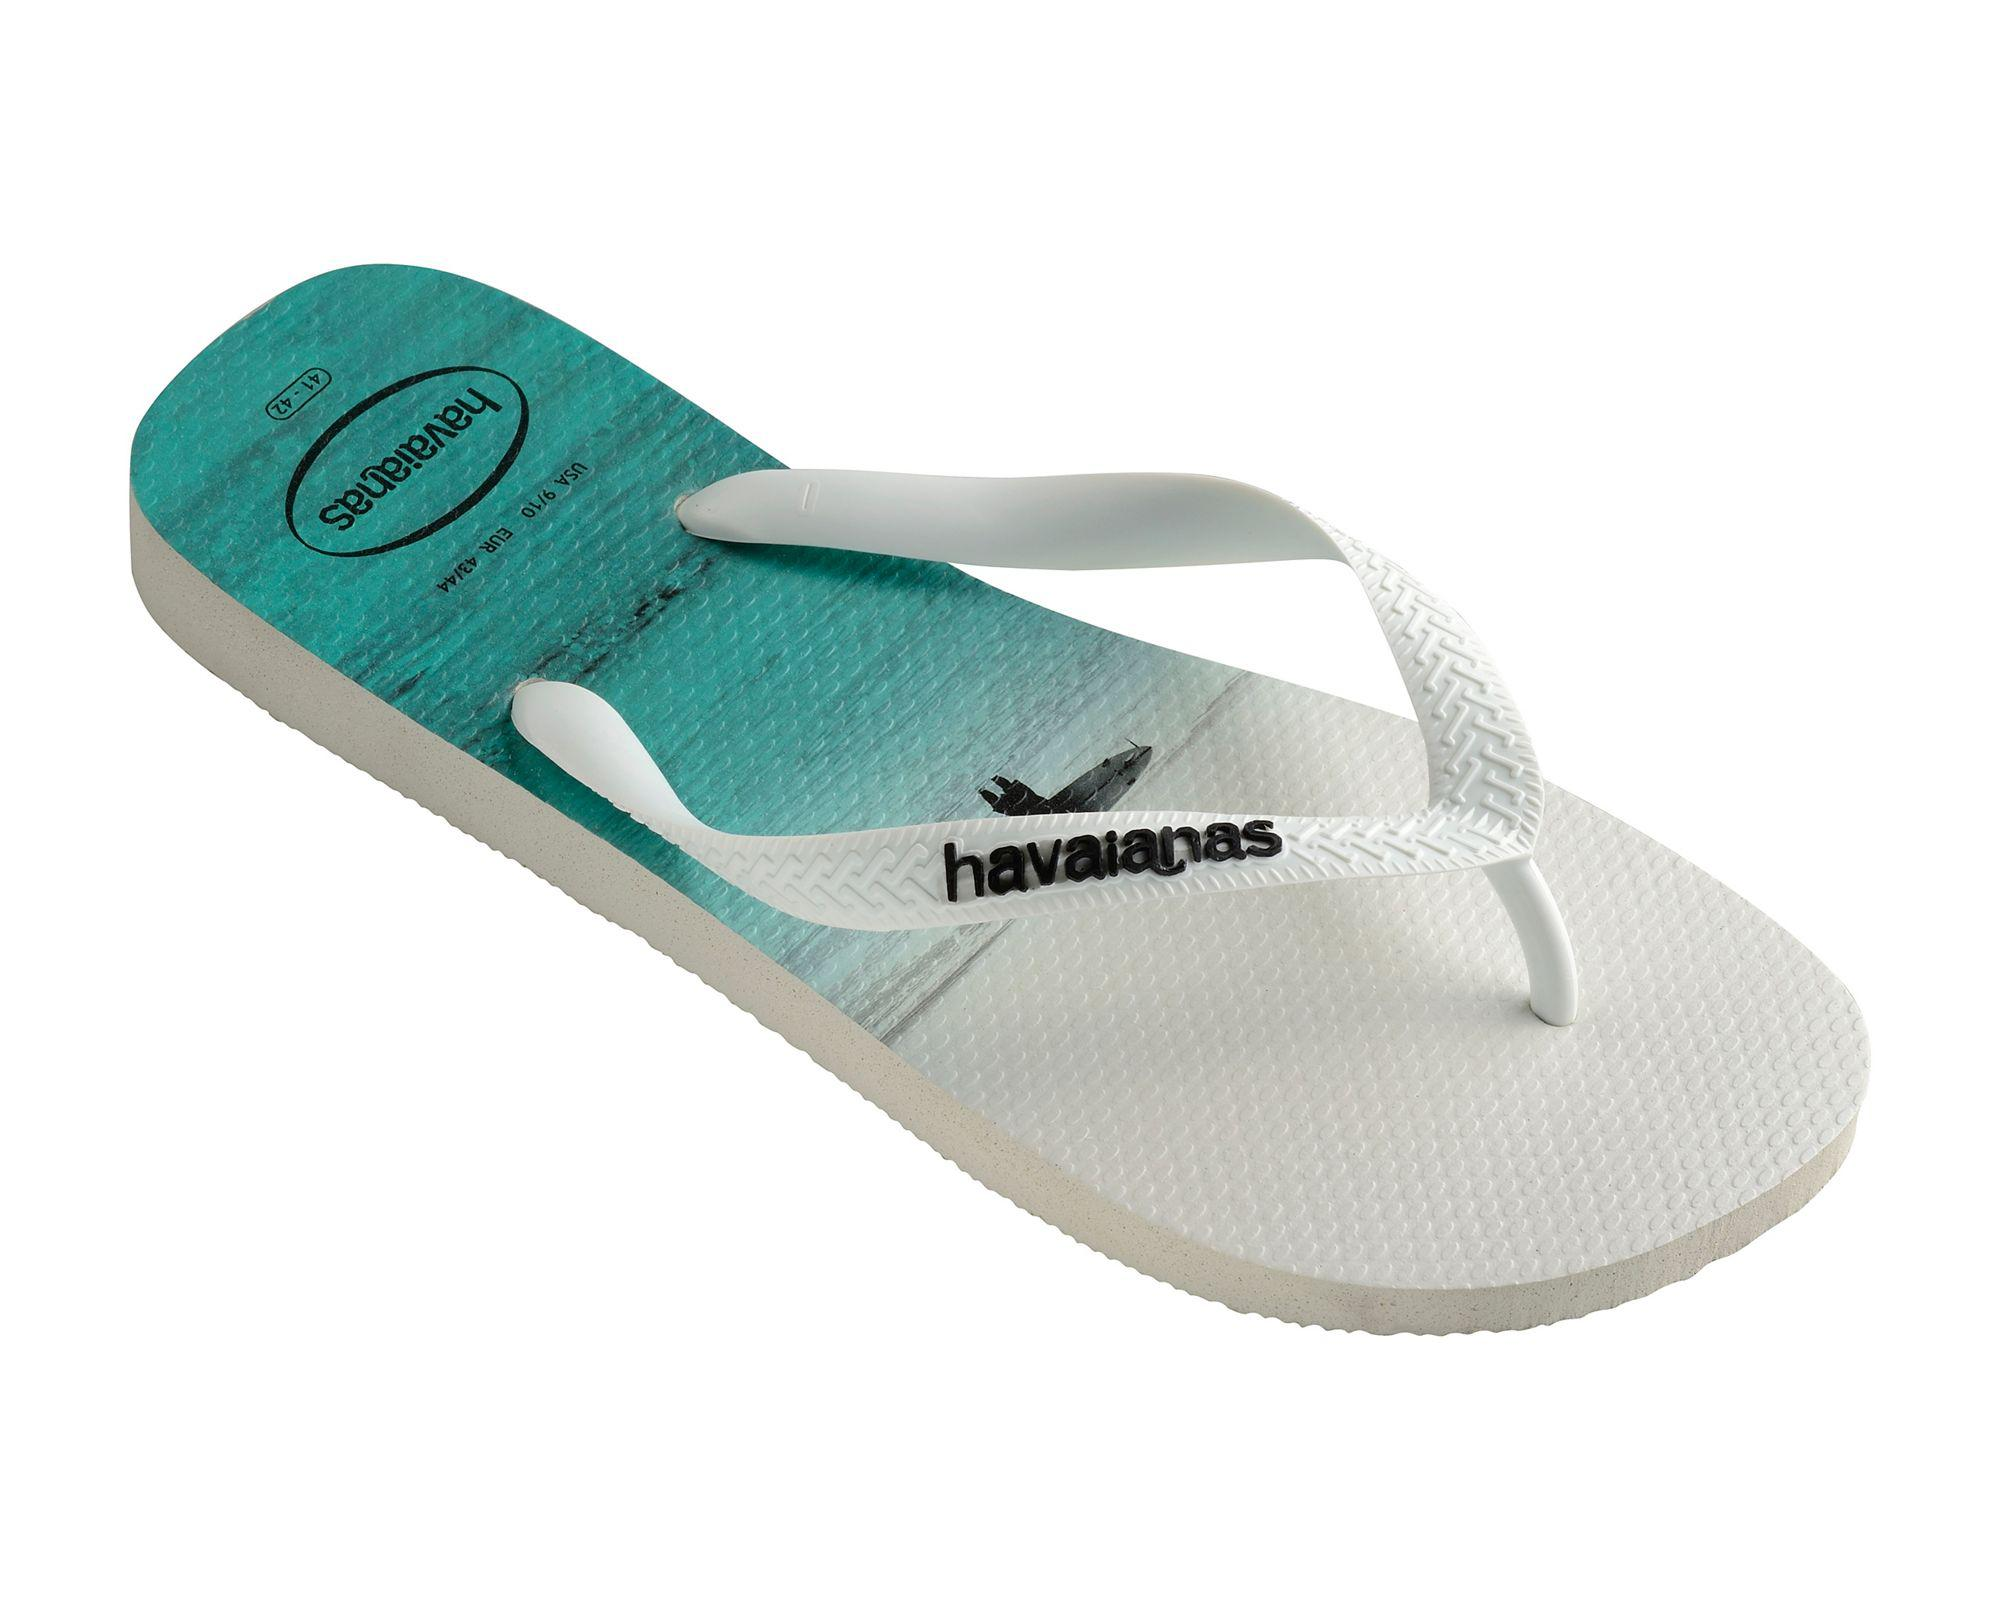 13b8eb6d31a4 Havaianas White Hype Flip Flops in White for Men - Save 68% - Lyst